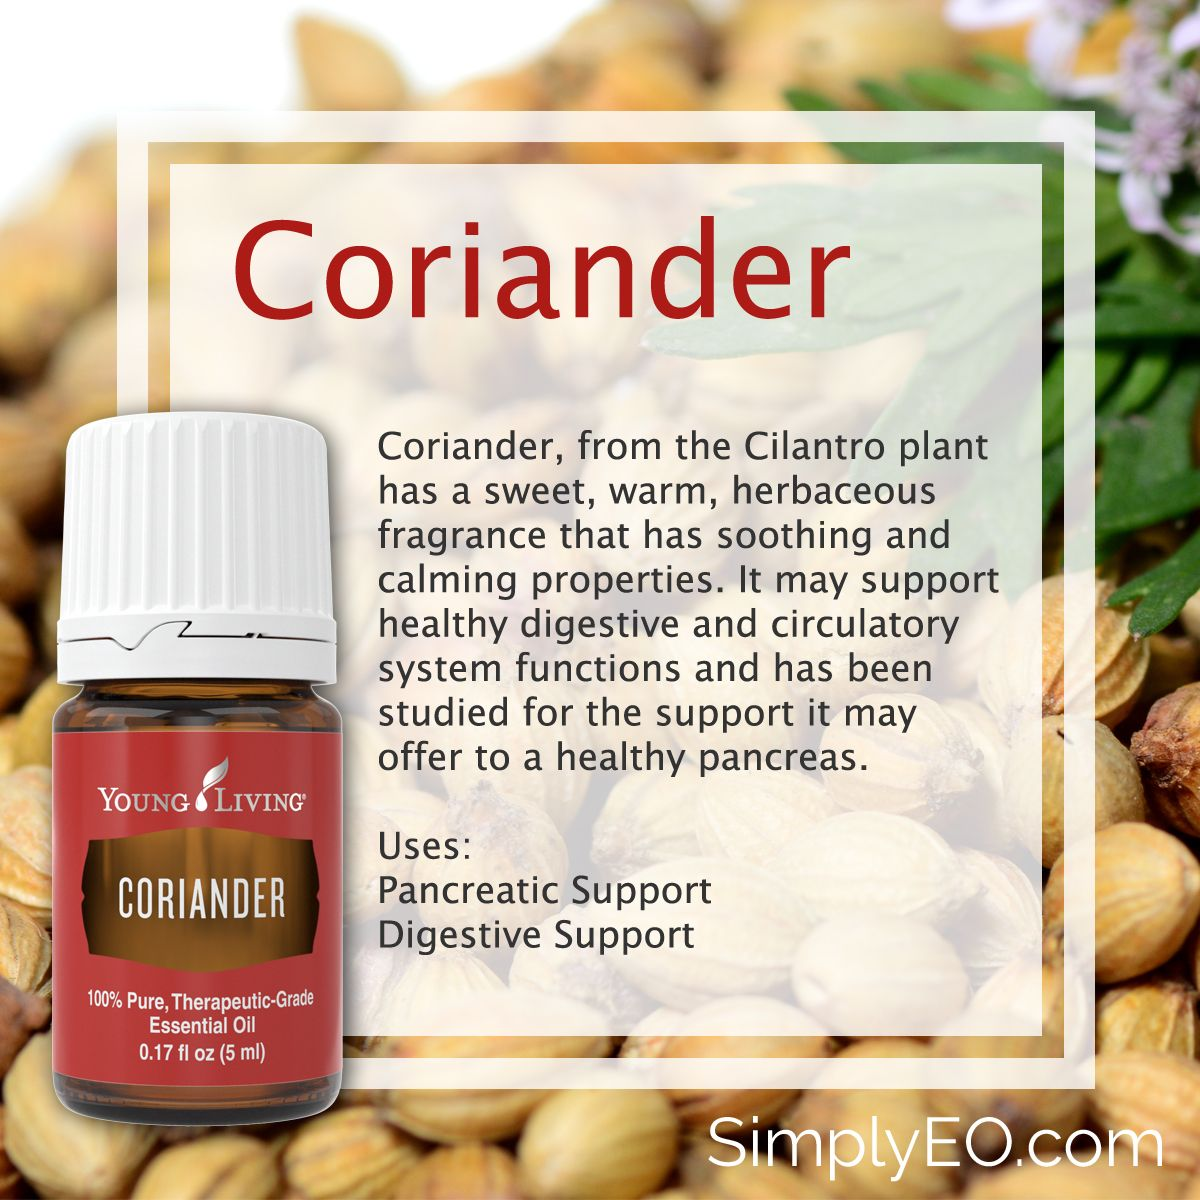 did you know that coriander plant leaves are cilantro? this